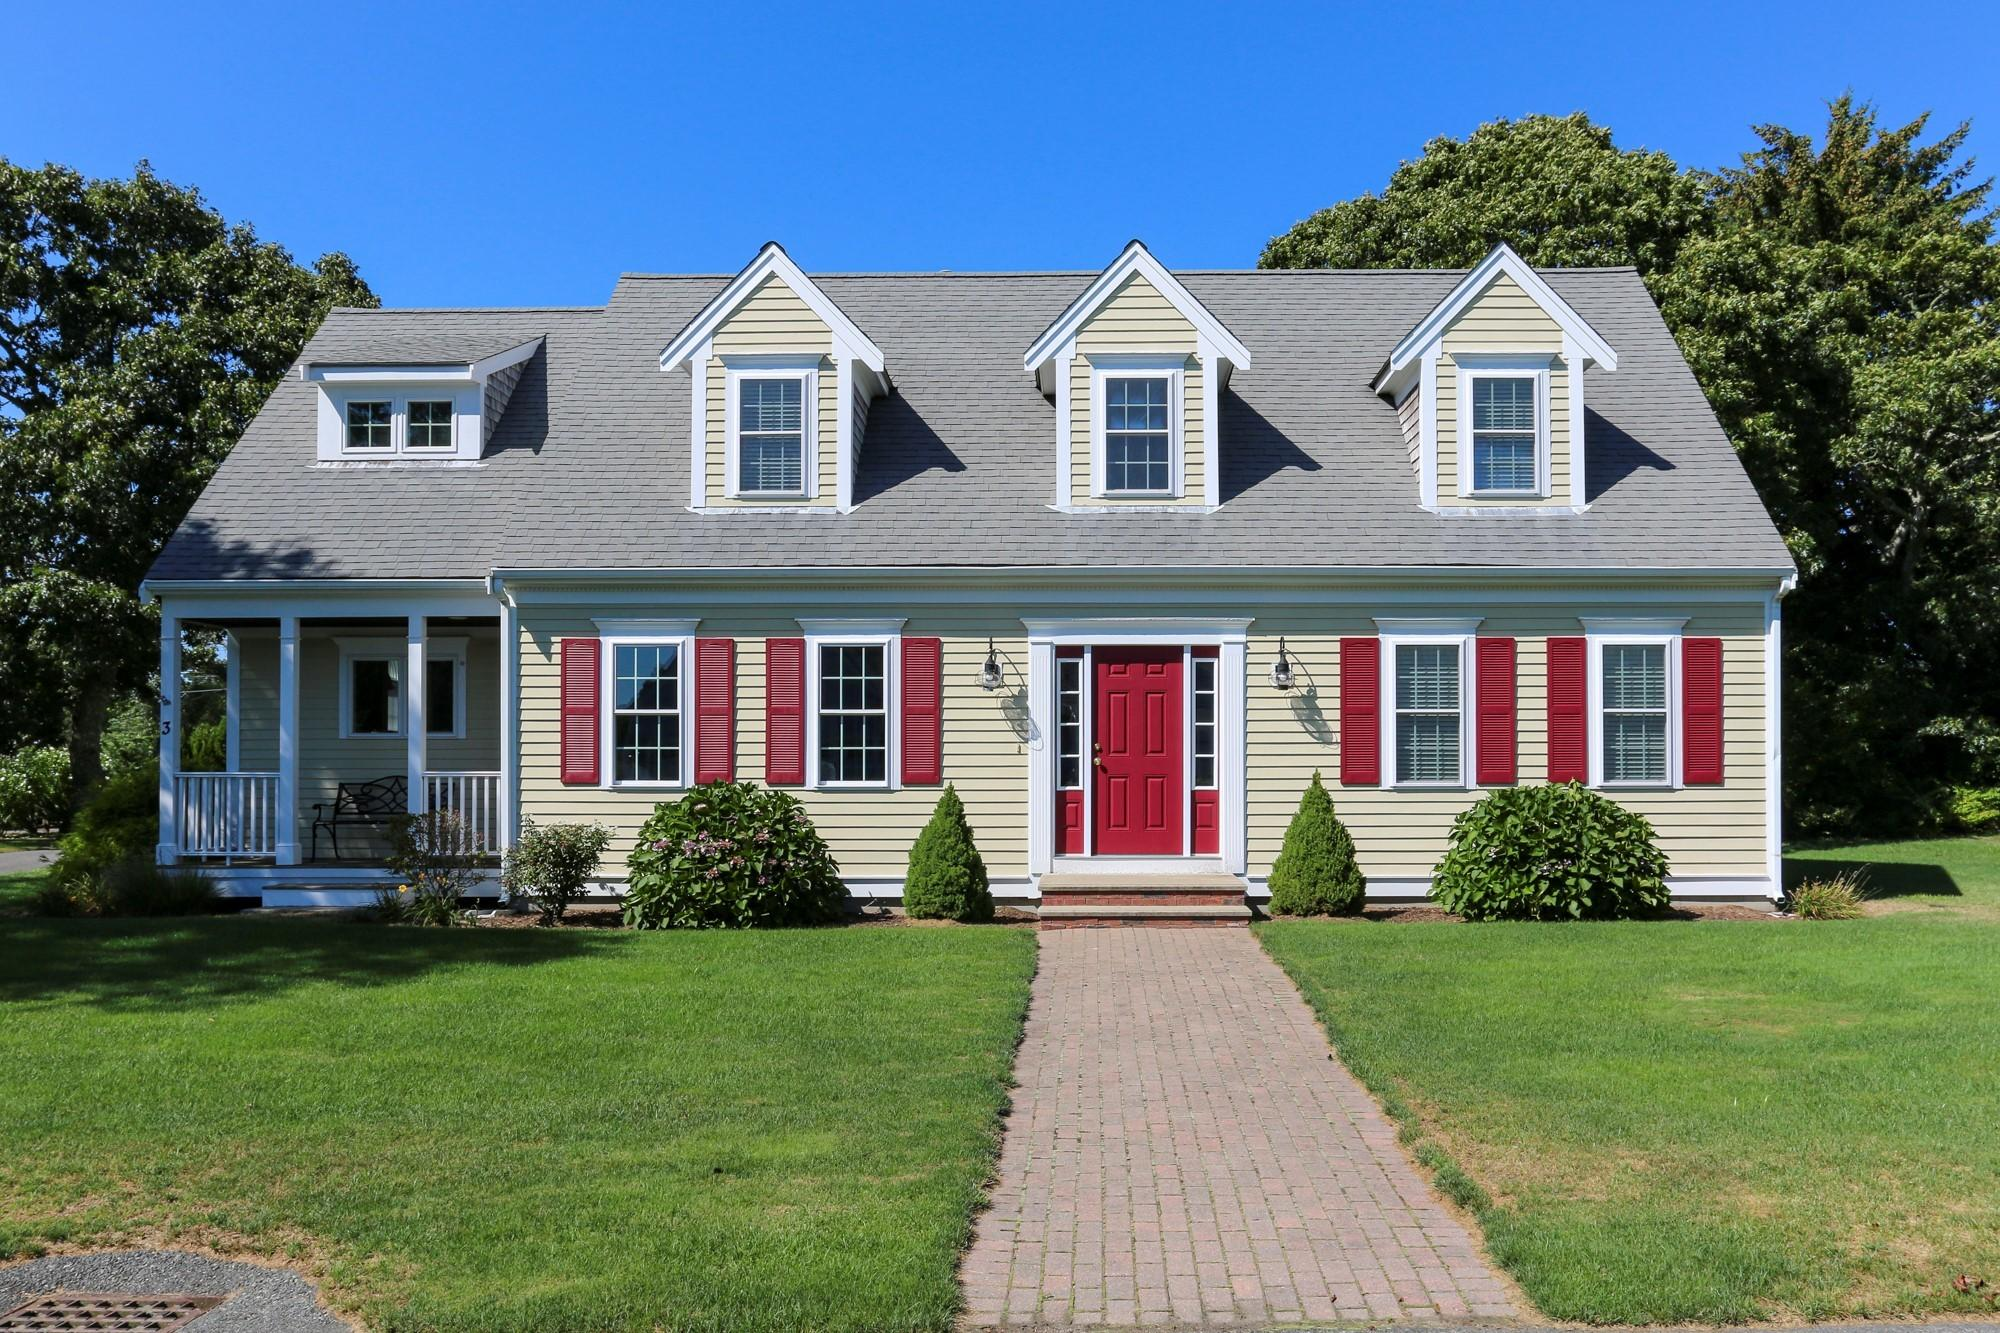 3 Nellies Way, Chatham, MA  02633 - slide 41